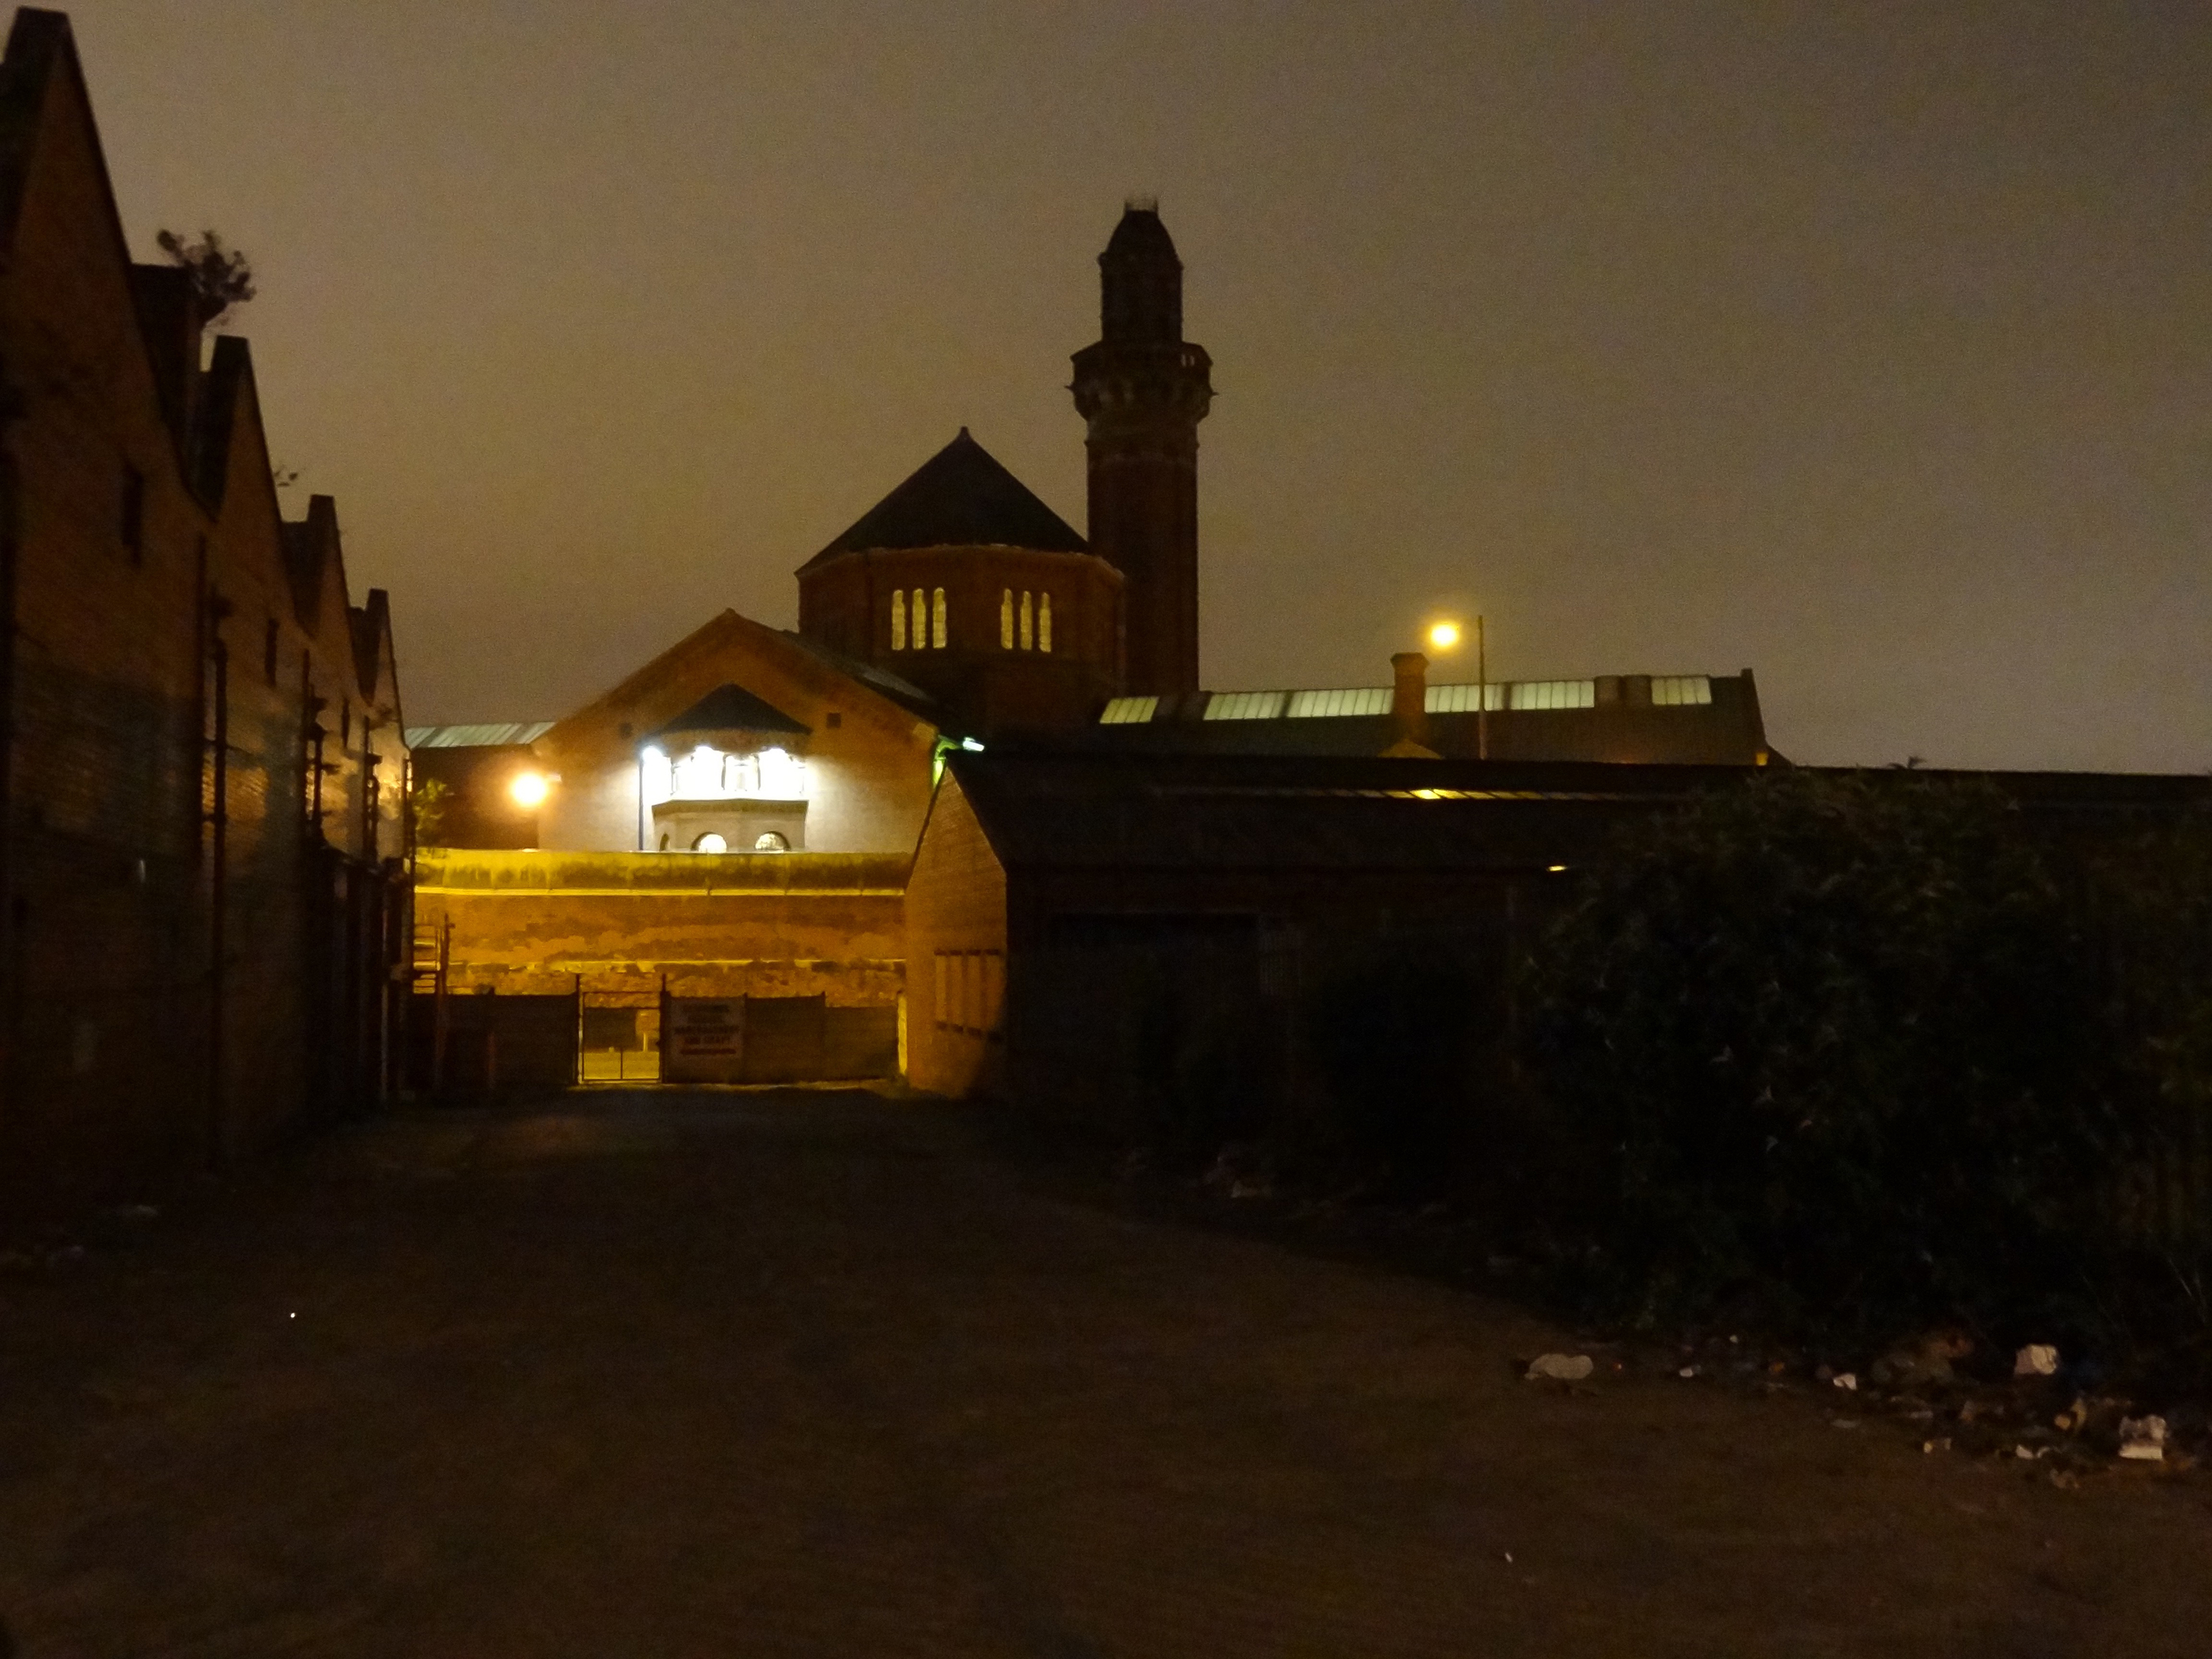 Strangeways in Salford, the panopticon of light.